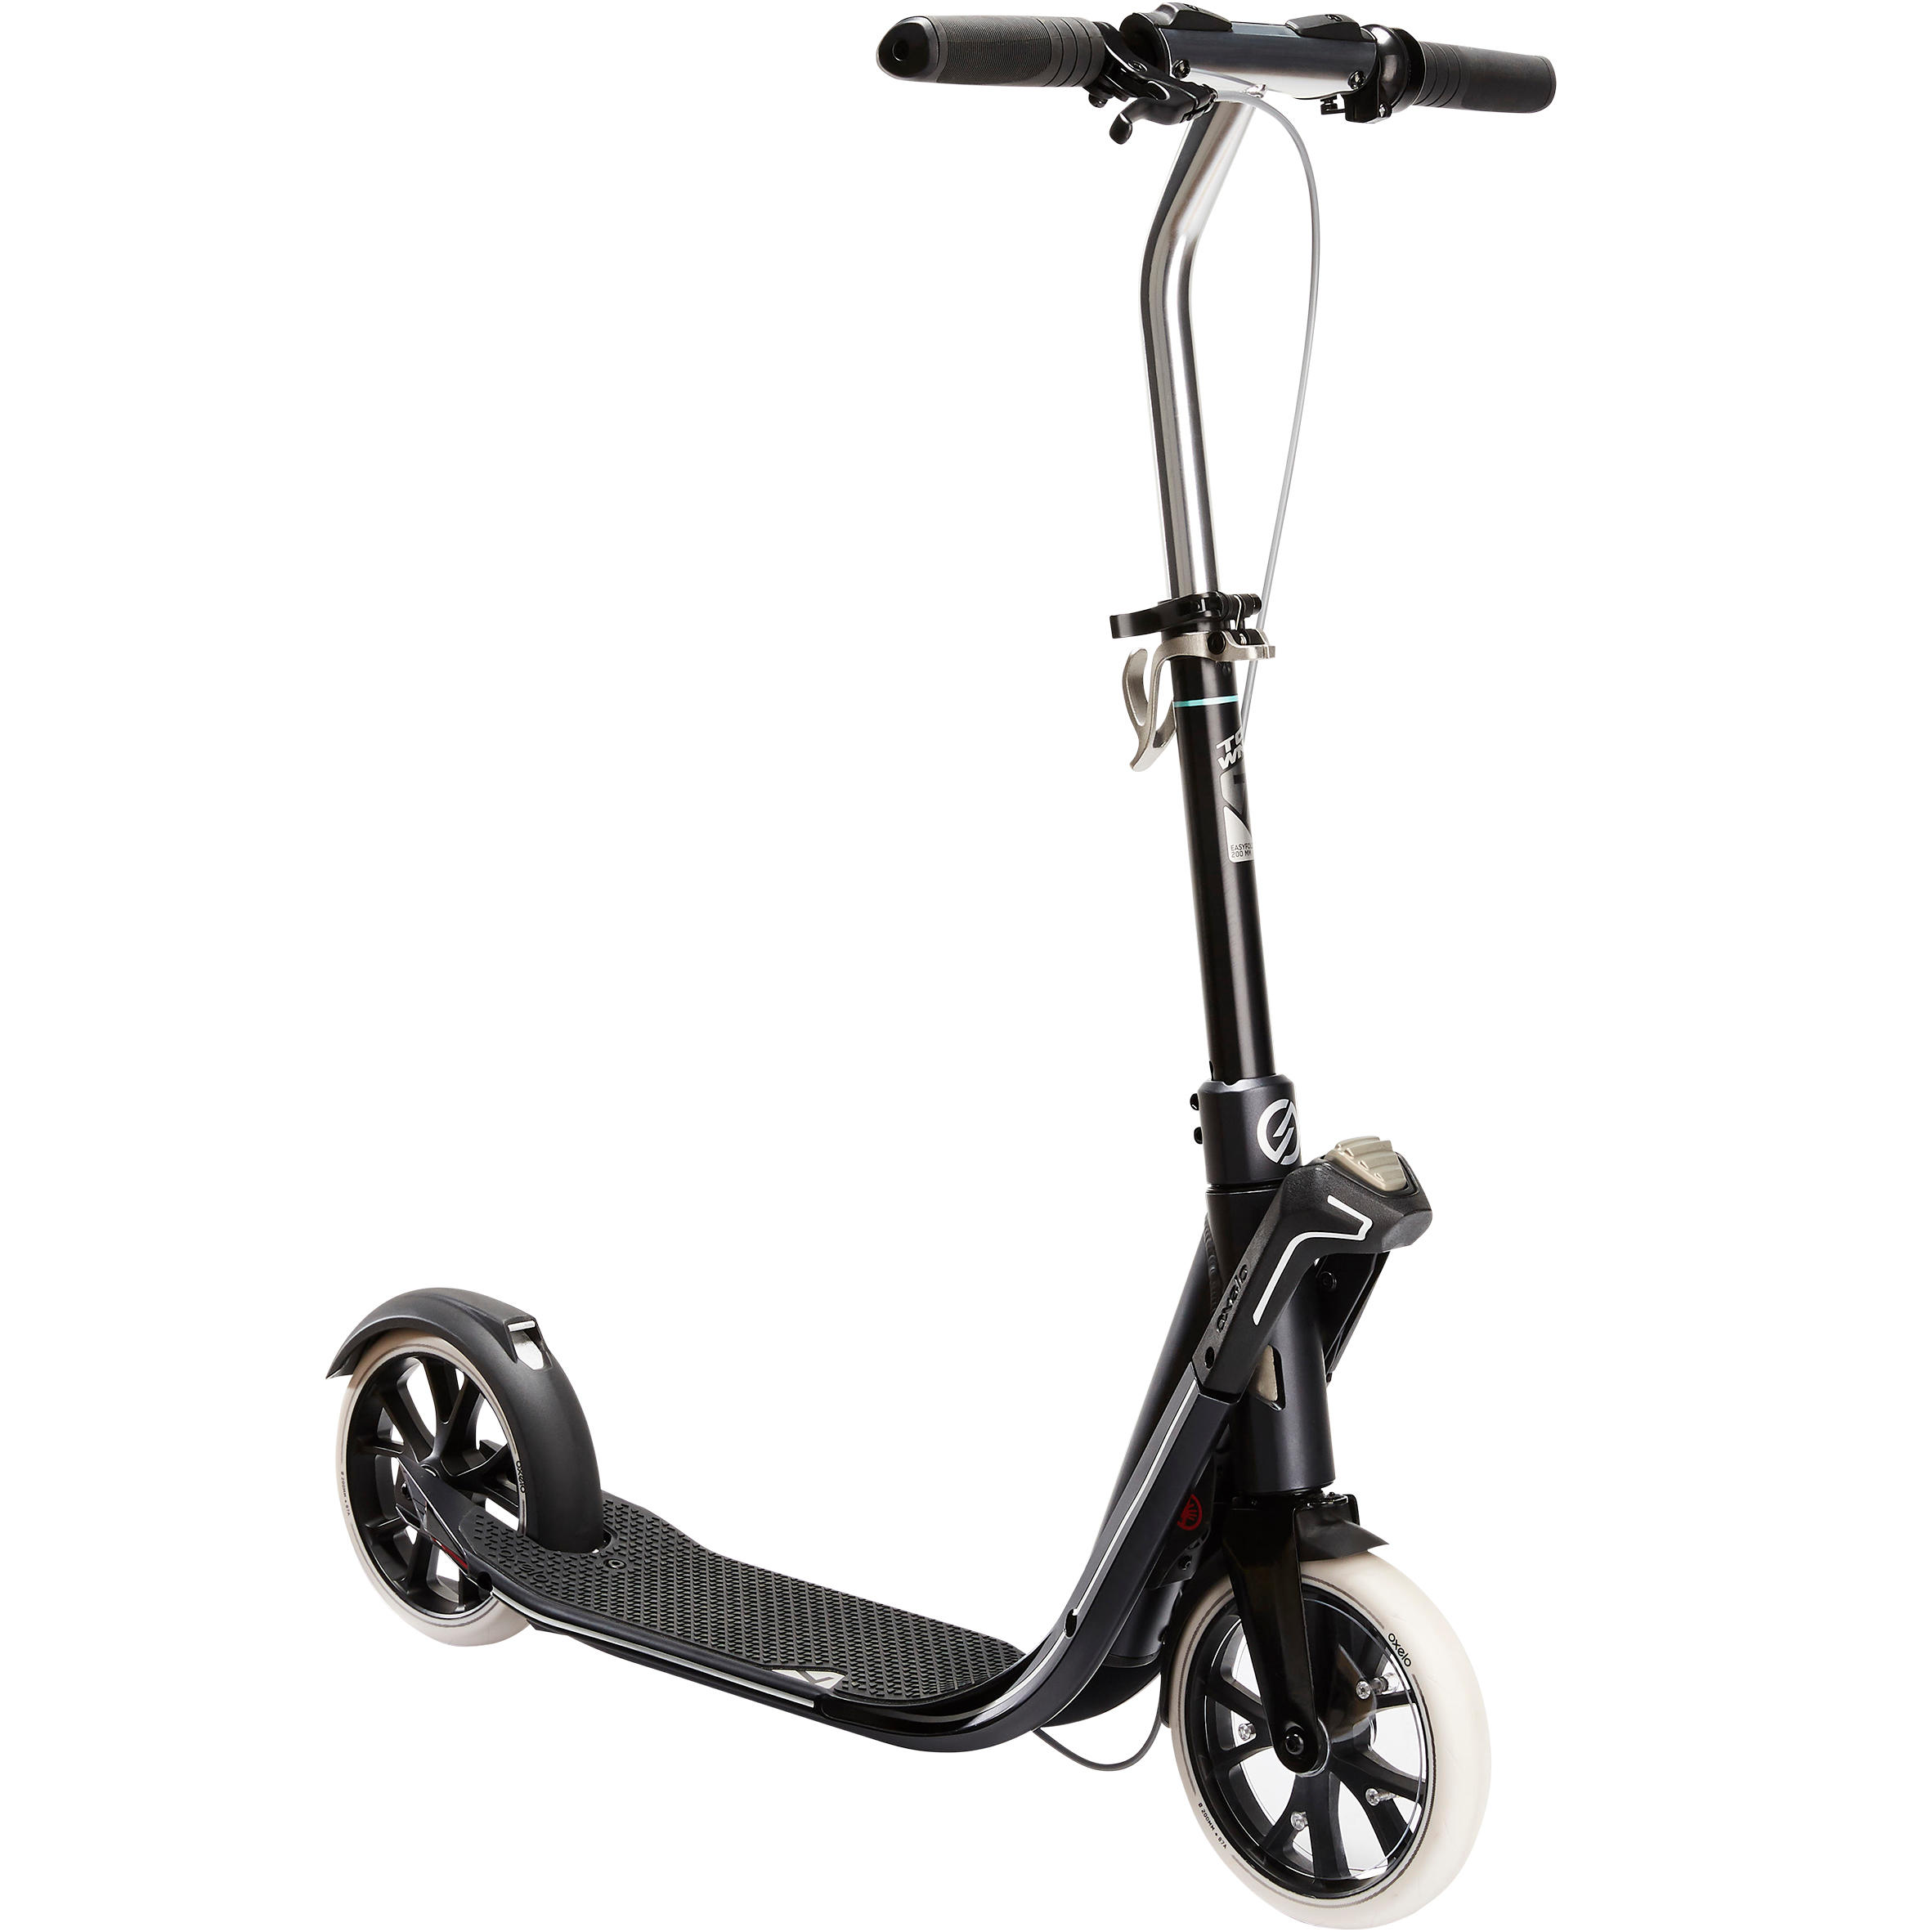 Town 7 EF V2 Adult Scooter - Sand Grey